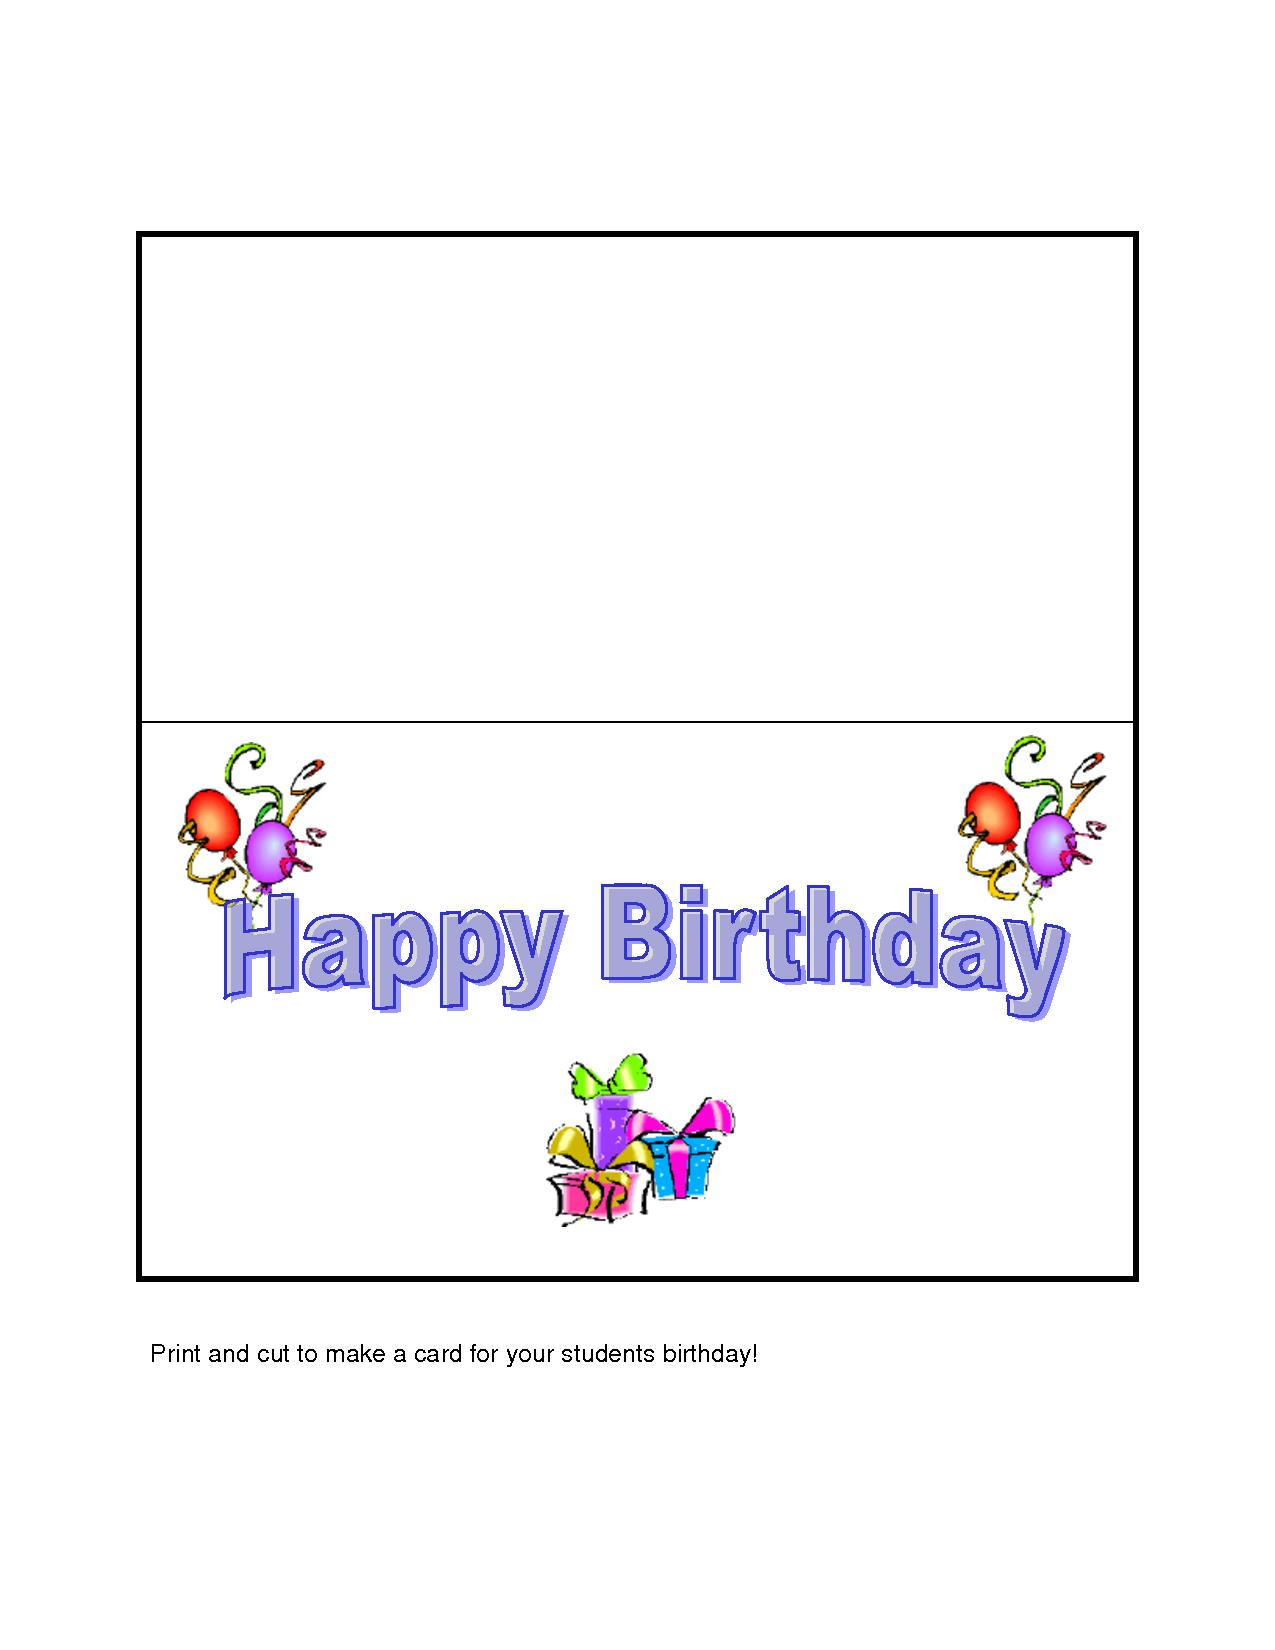 free birthday templates online ; birthday-card-template-birthday-card-template-birthday-card-template-word-free-birthday-card-template-psd-birthday-card-template-black-and